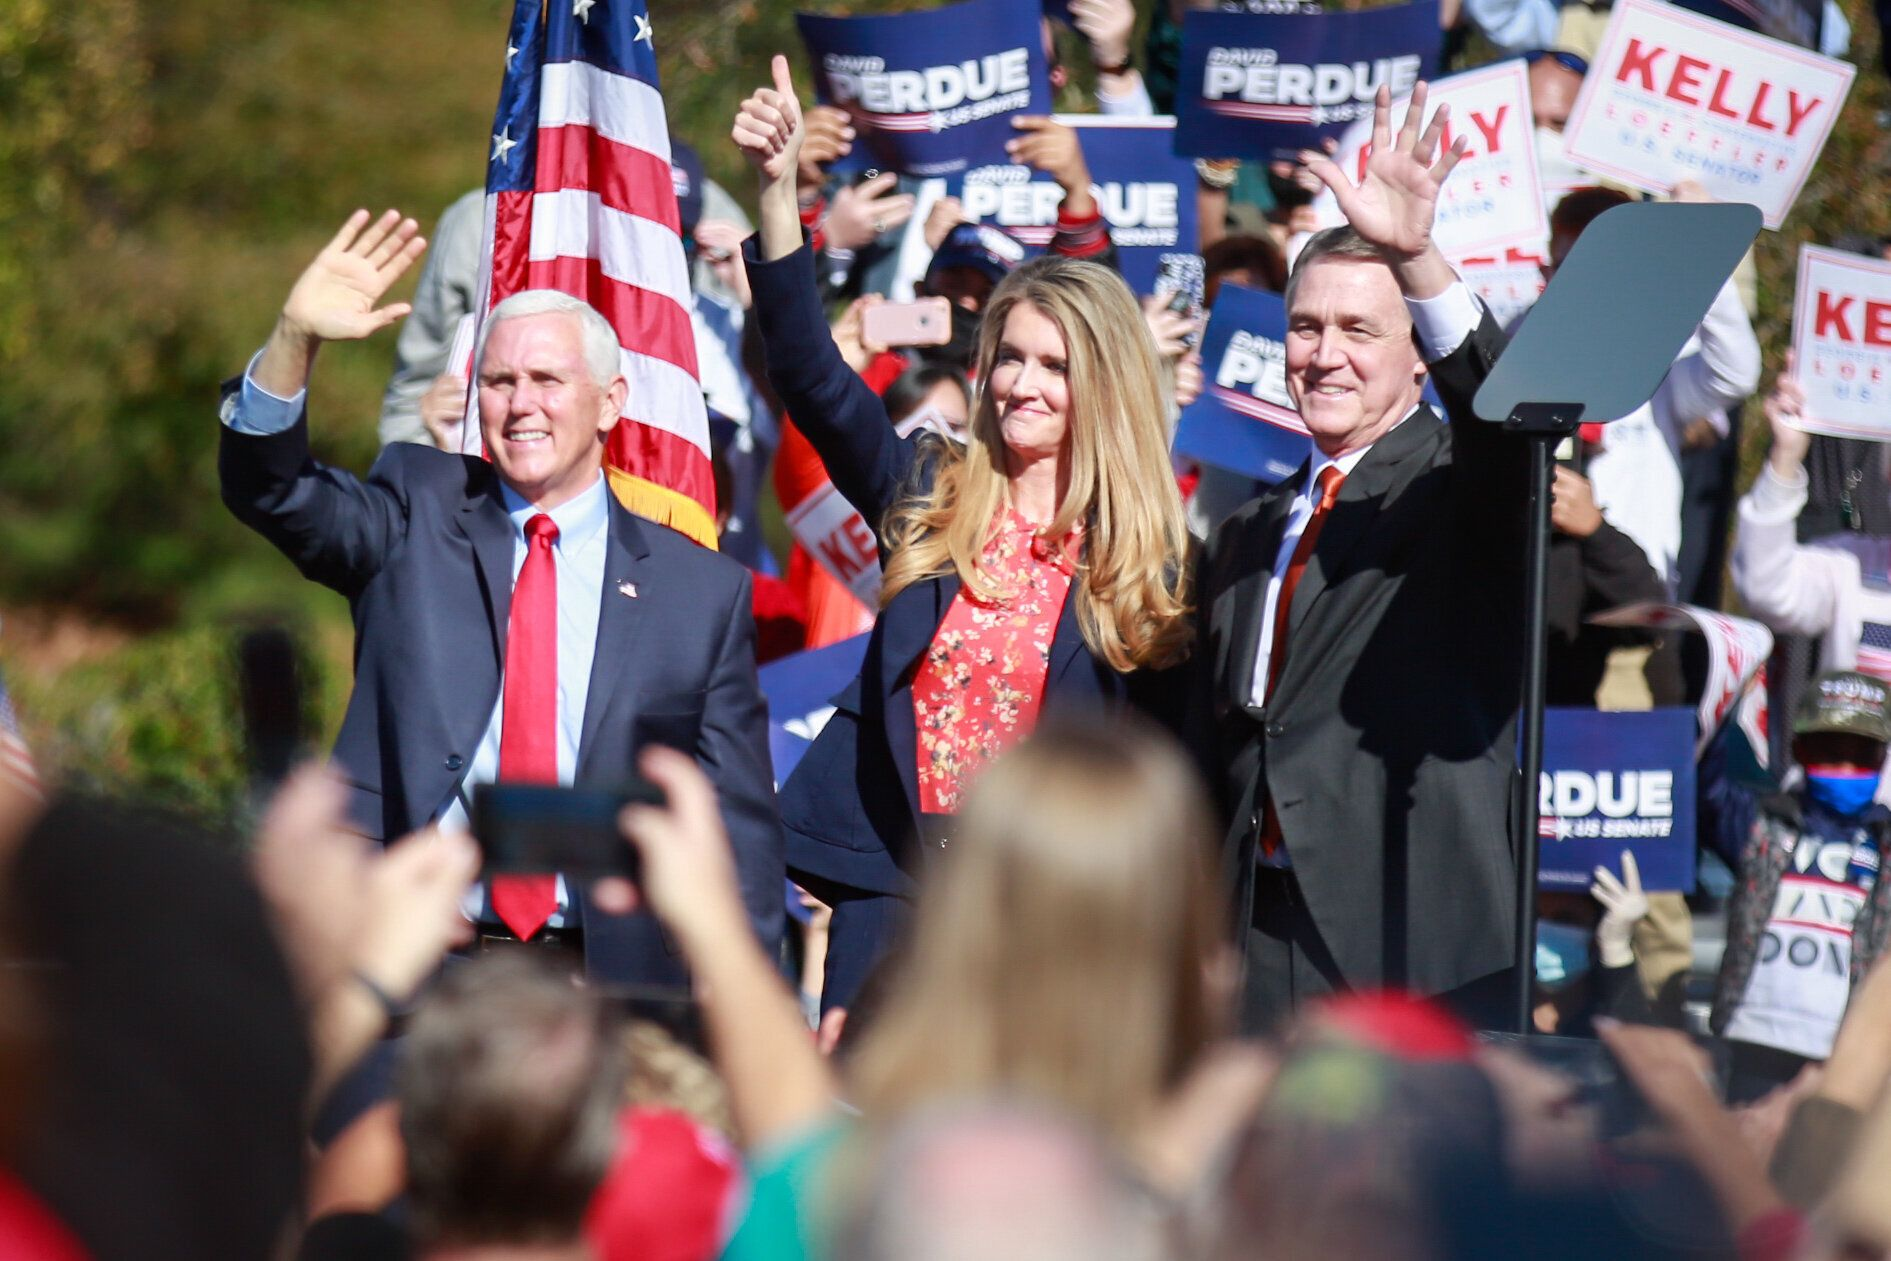 Vice President Mike Pence (from left) and Sens. Kelly Loeffler and David Perdue wave to supporters at a Defend the Majority R